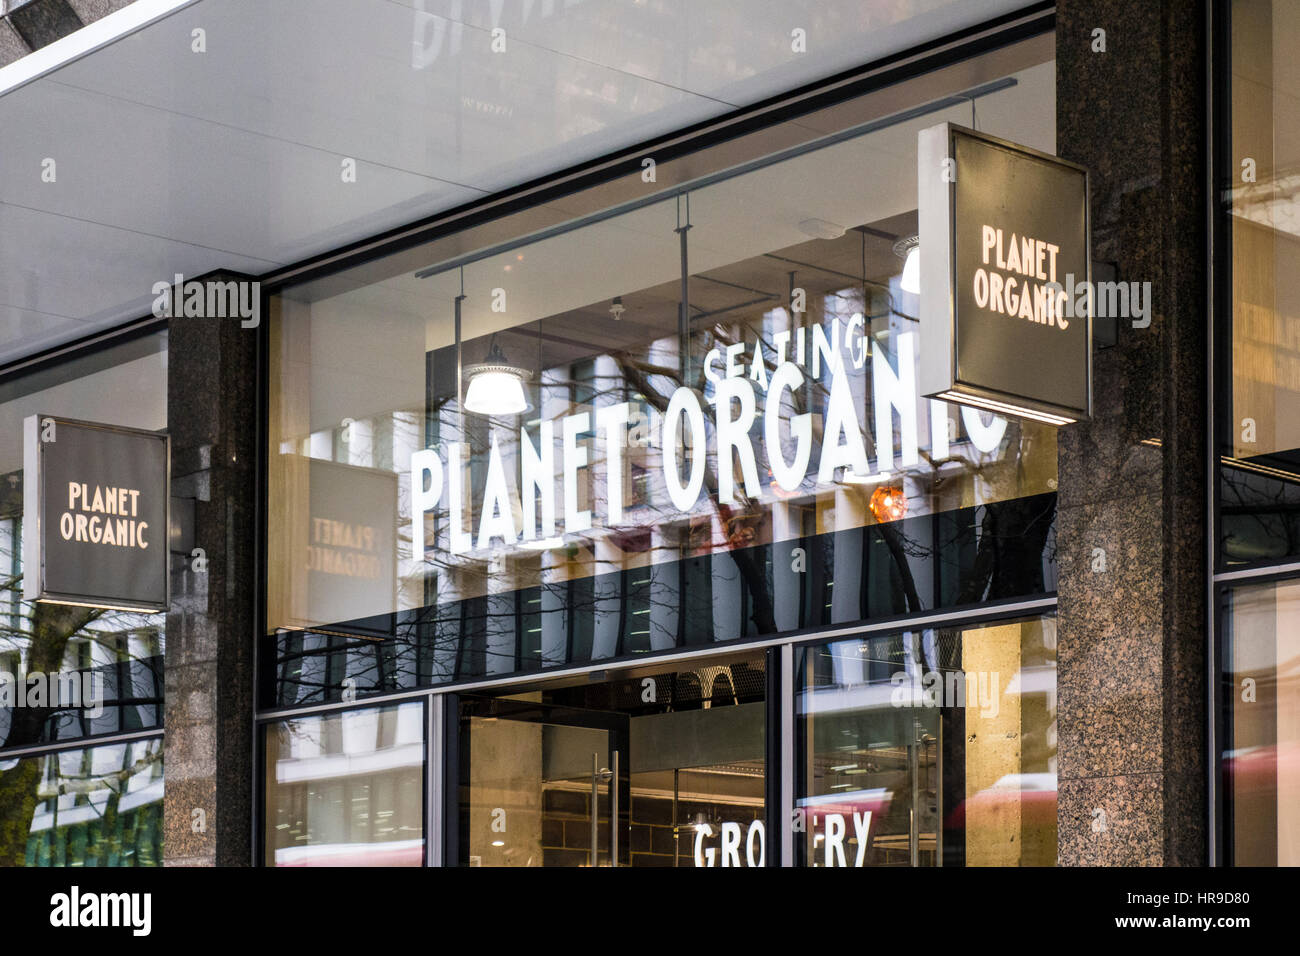 Planet Organic cafe restaurant shop store on Tottenham Court Road, London, UK - Stock Image